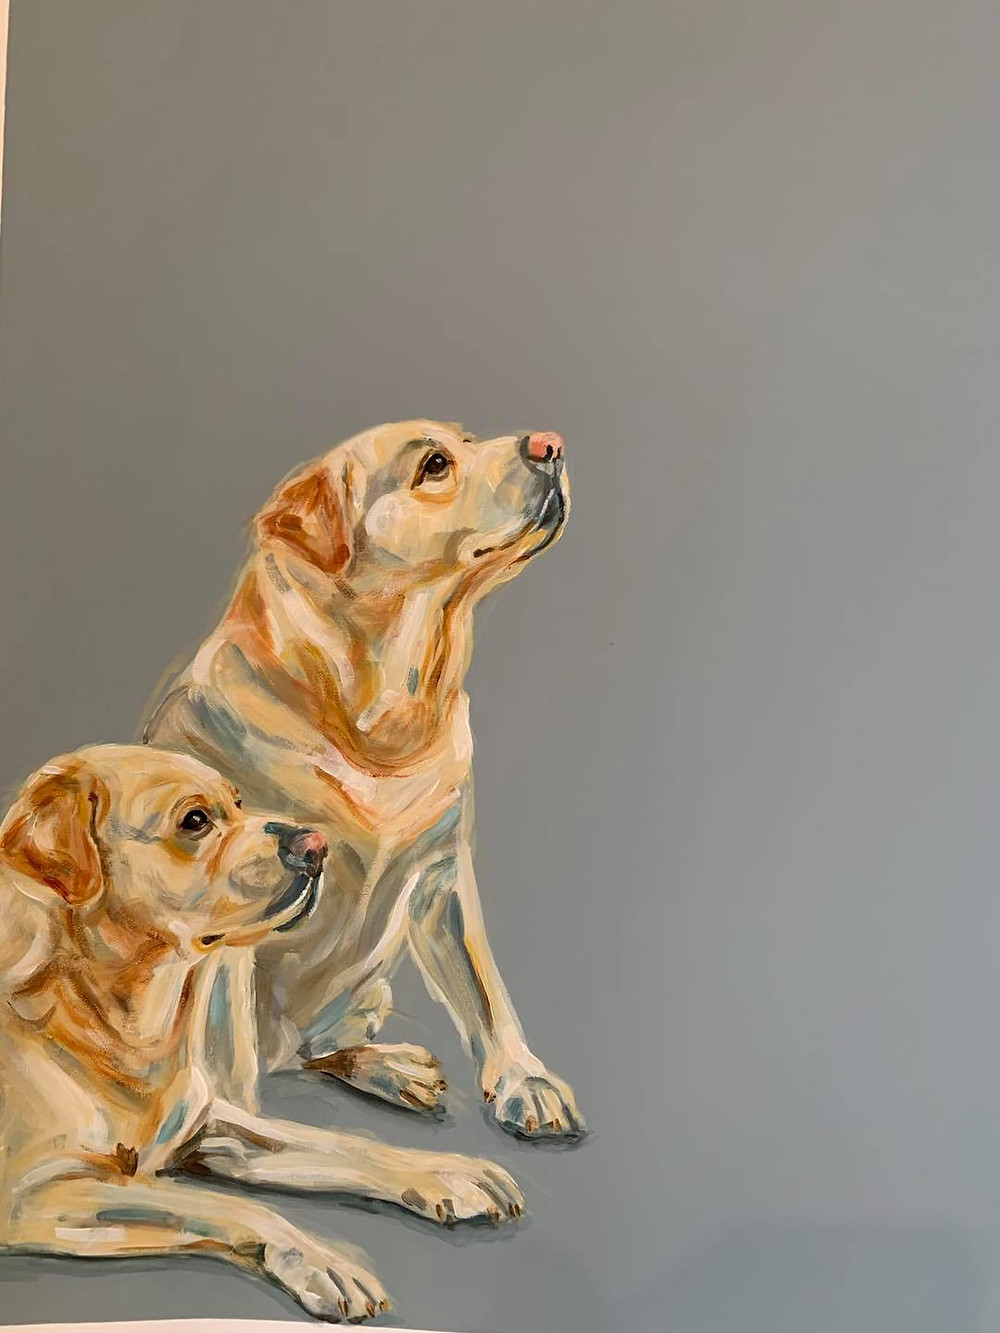 Photo shows two labrador type dogs. One is sitting, the other is half  lying down